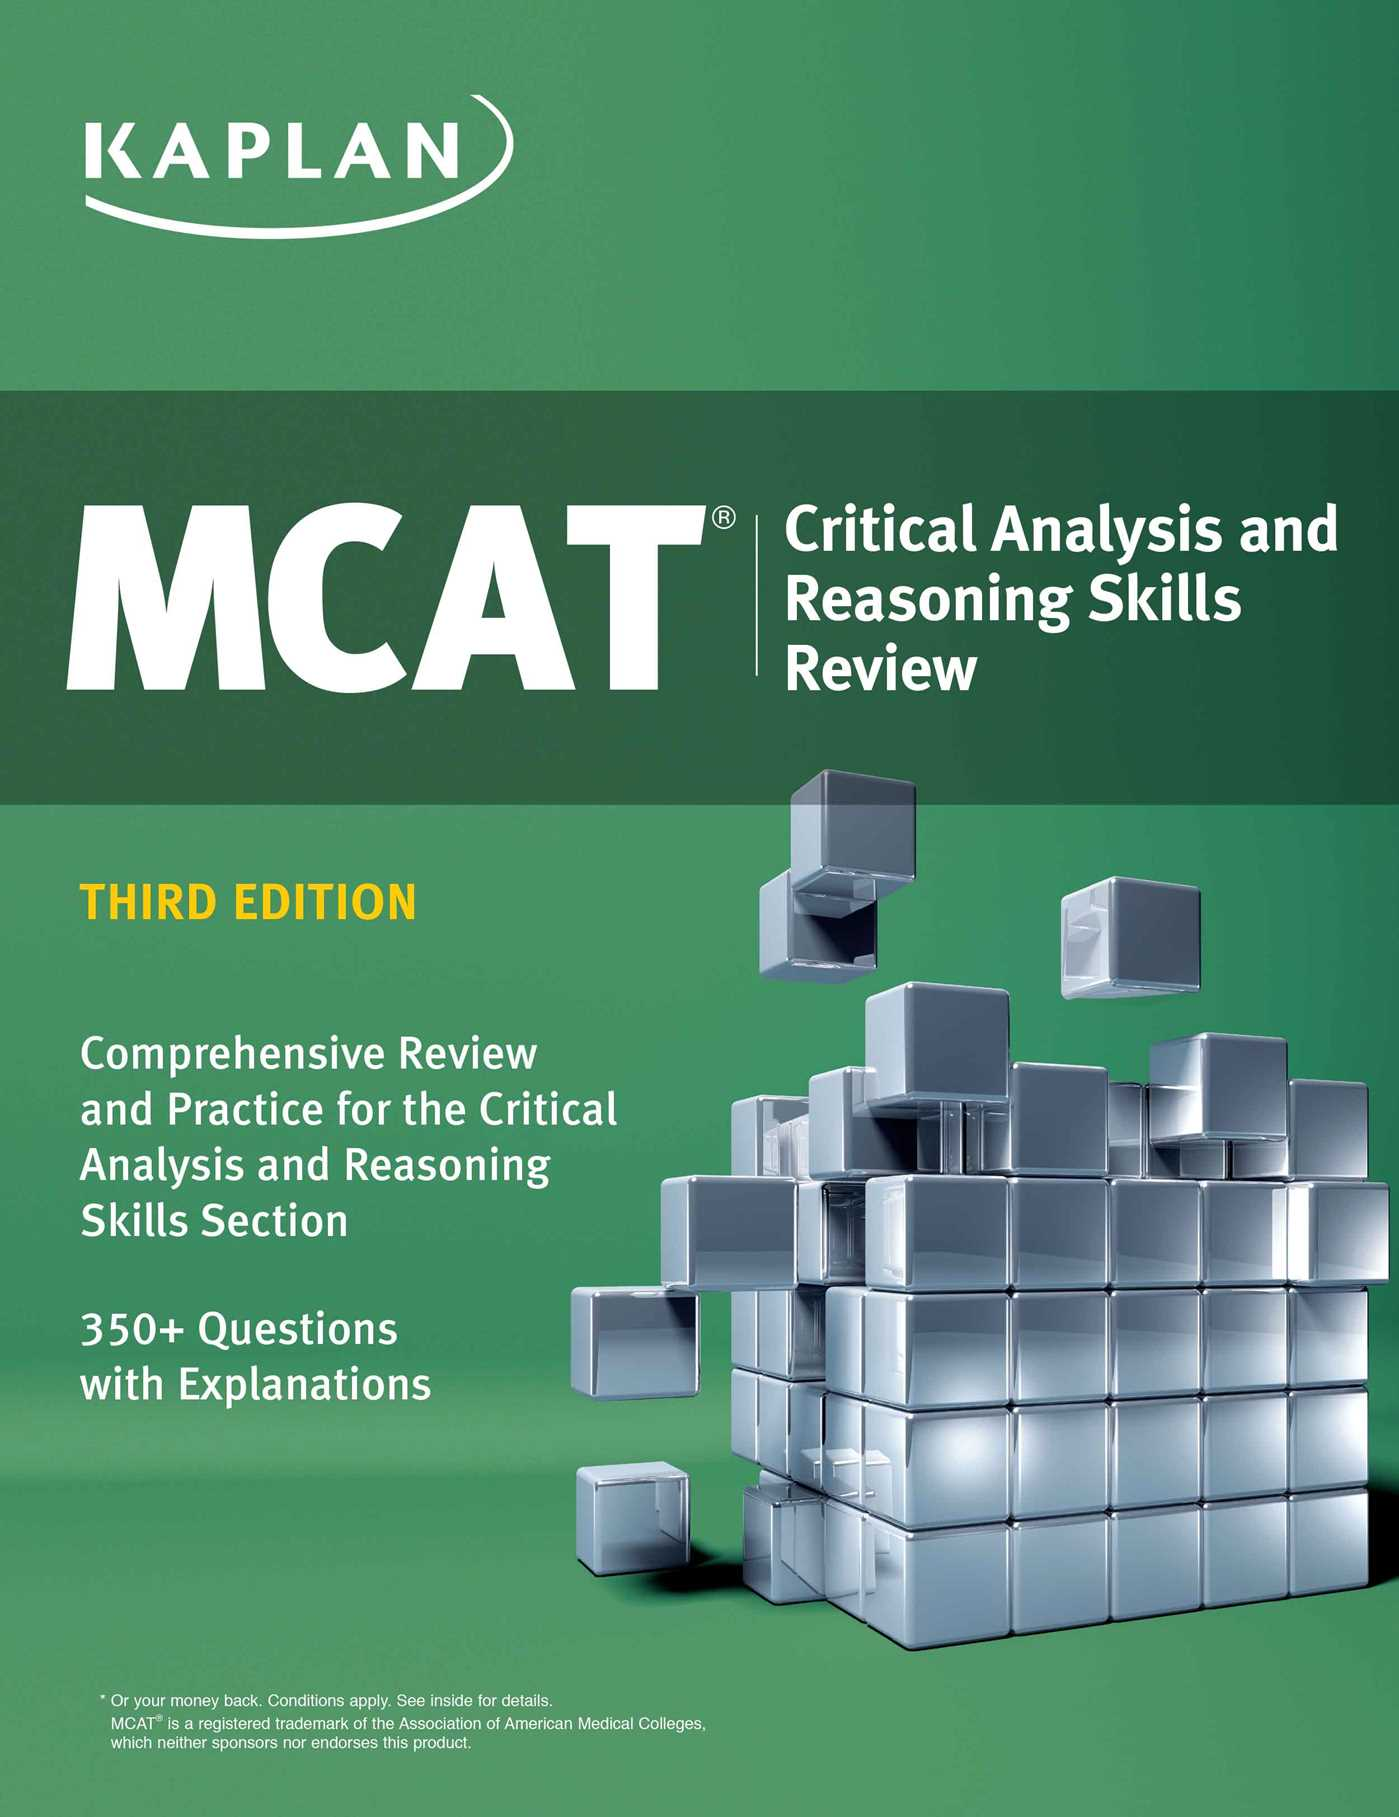 kaplan mcat strategy and critical thinking Mcat section tests your mastery of critical thinking in each of the section areas topics are confluent and strategy point.